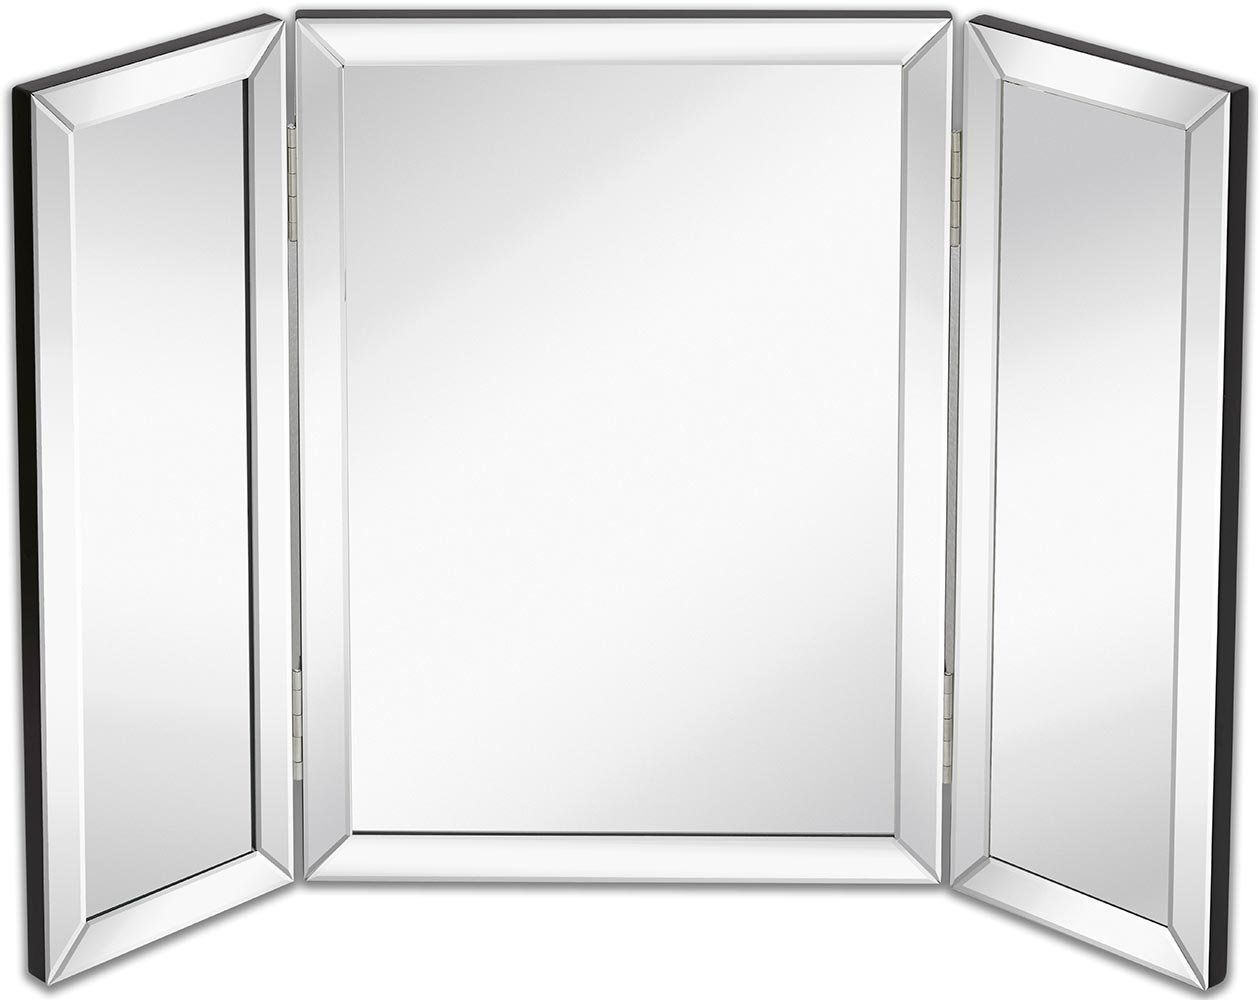 Hamilton Hills Trifold Vanity Mirror | Solid Hinged Sided Tri-fold Beveled Mirrored Edges | 3 Way Hangable on Wall or Tabletop Cosmetic & Makeup Mirror